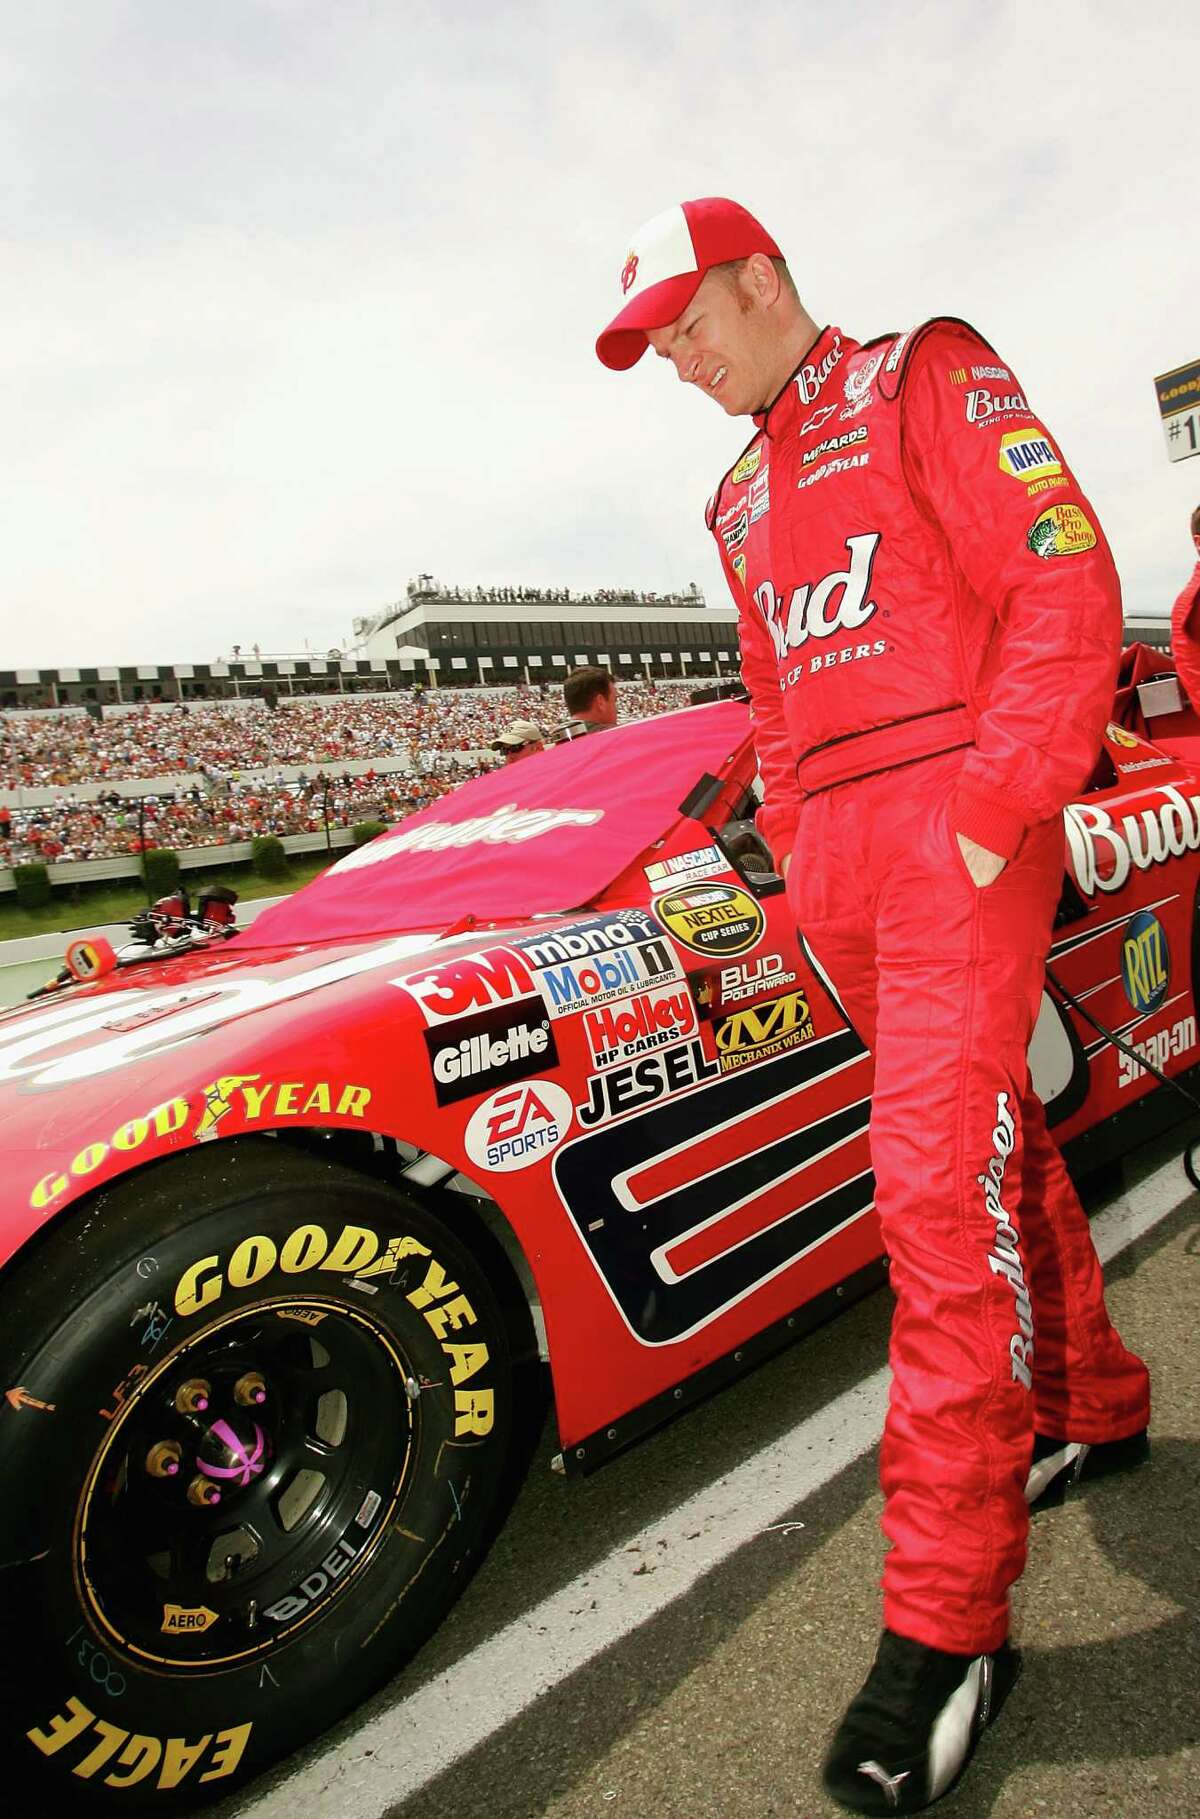 LONG POND, PA - JUNE 12: Dale Earnhardt Jr., driver of the #8 Budweiser Chevrolet, walks on the grid during the NASCAR Nextel Cup Pocono 500 on June 12, 2005 at Pocono Raceway in Long Pond, Pennsylvania. (Photo by Nick Laham/Getty Images)